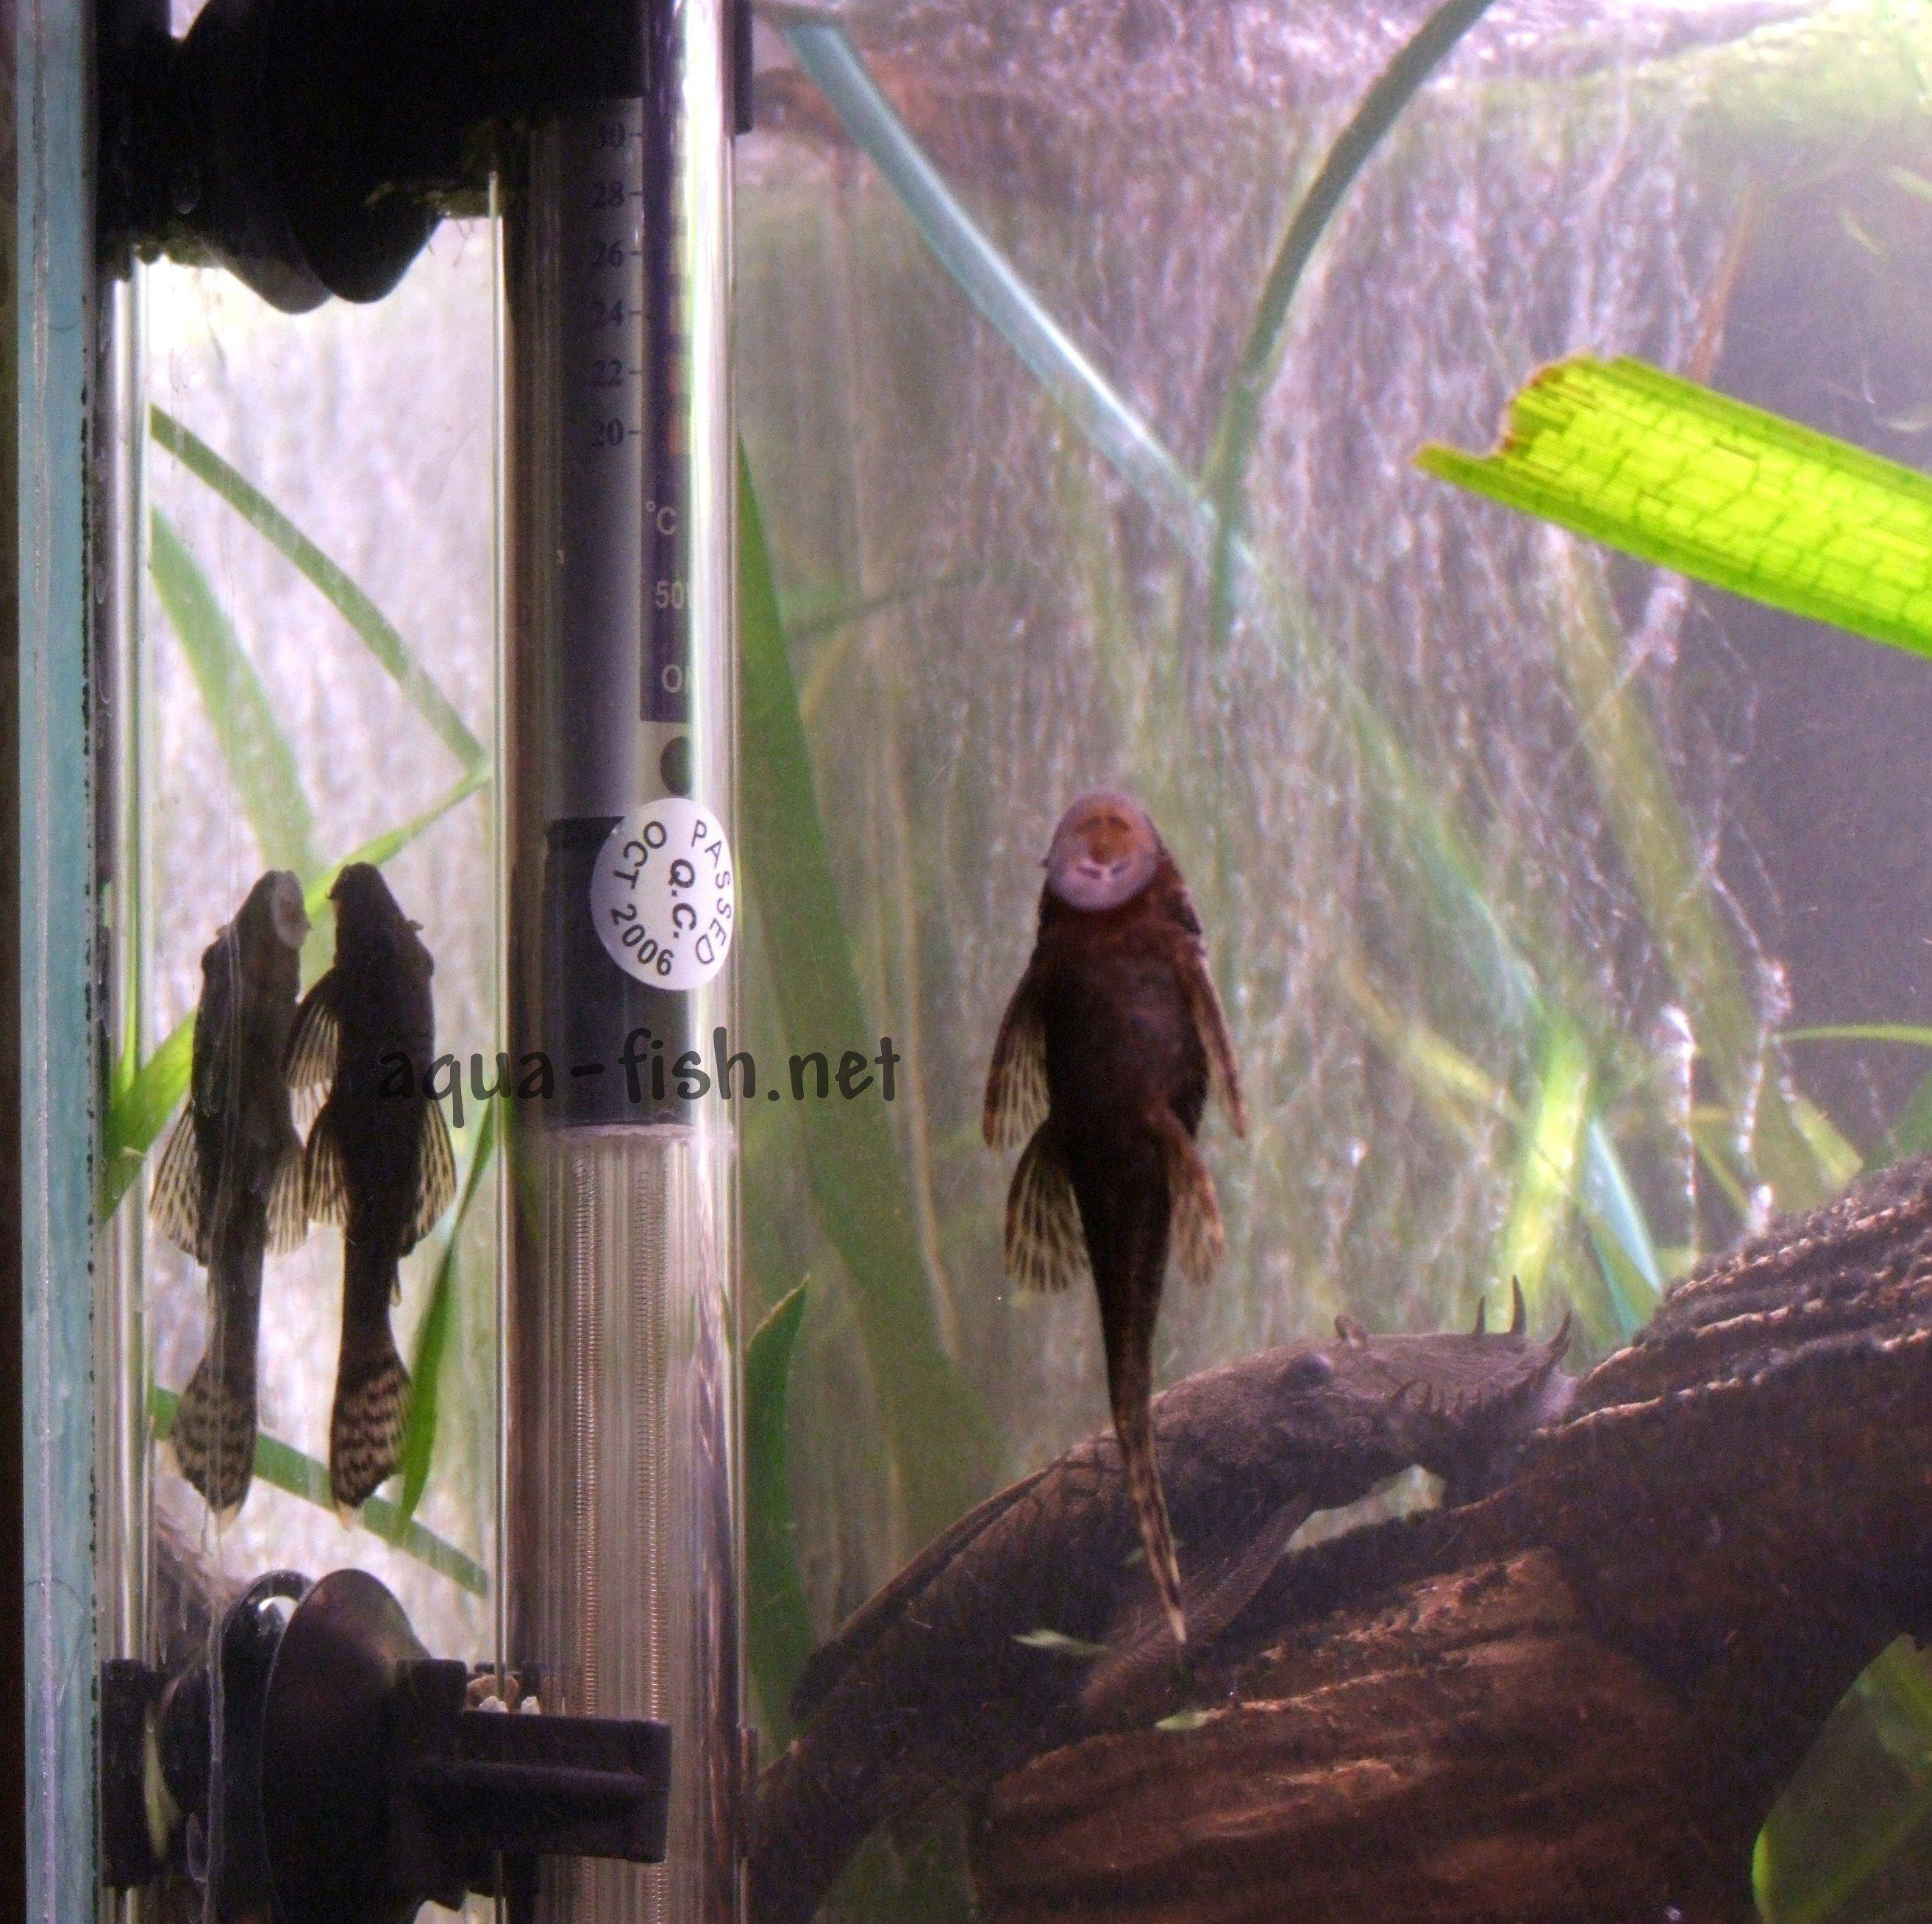 Suppliers of fish tank heaters, guide on usage with forum and faq.